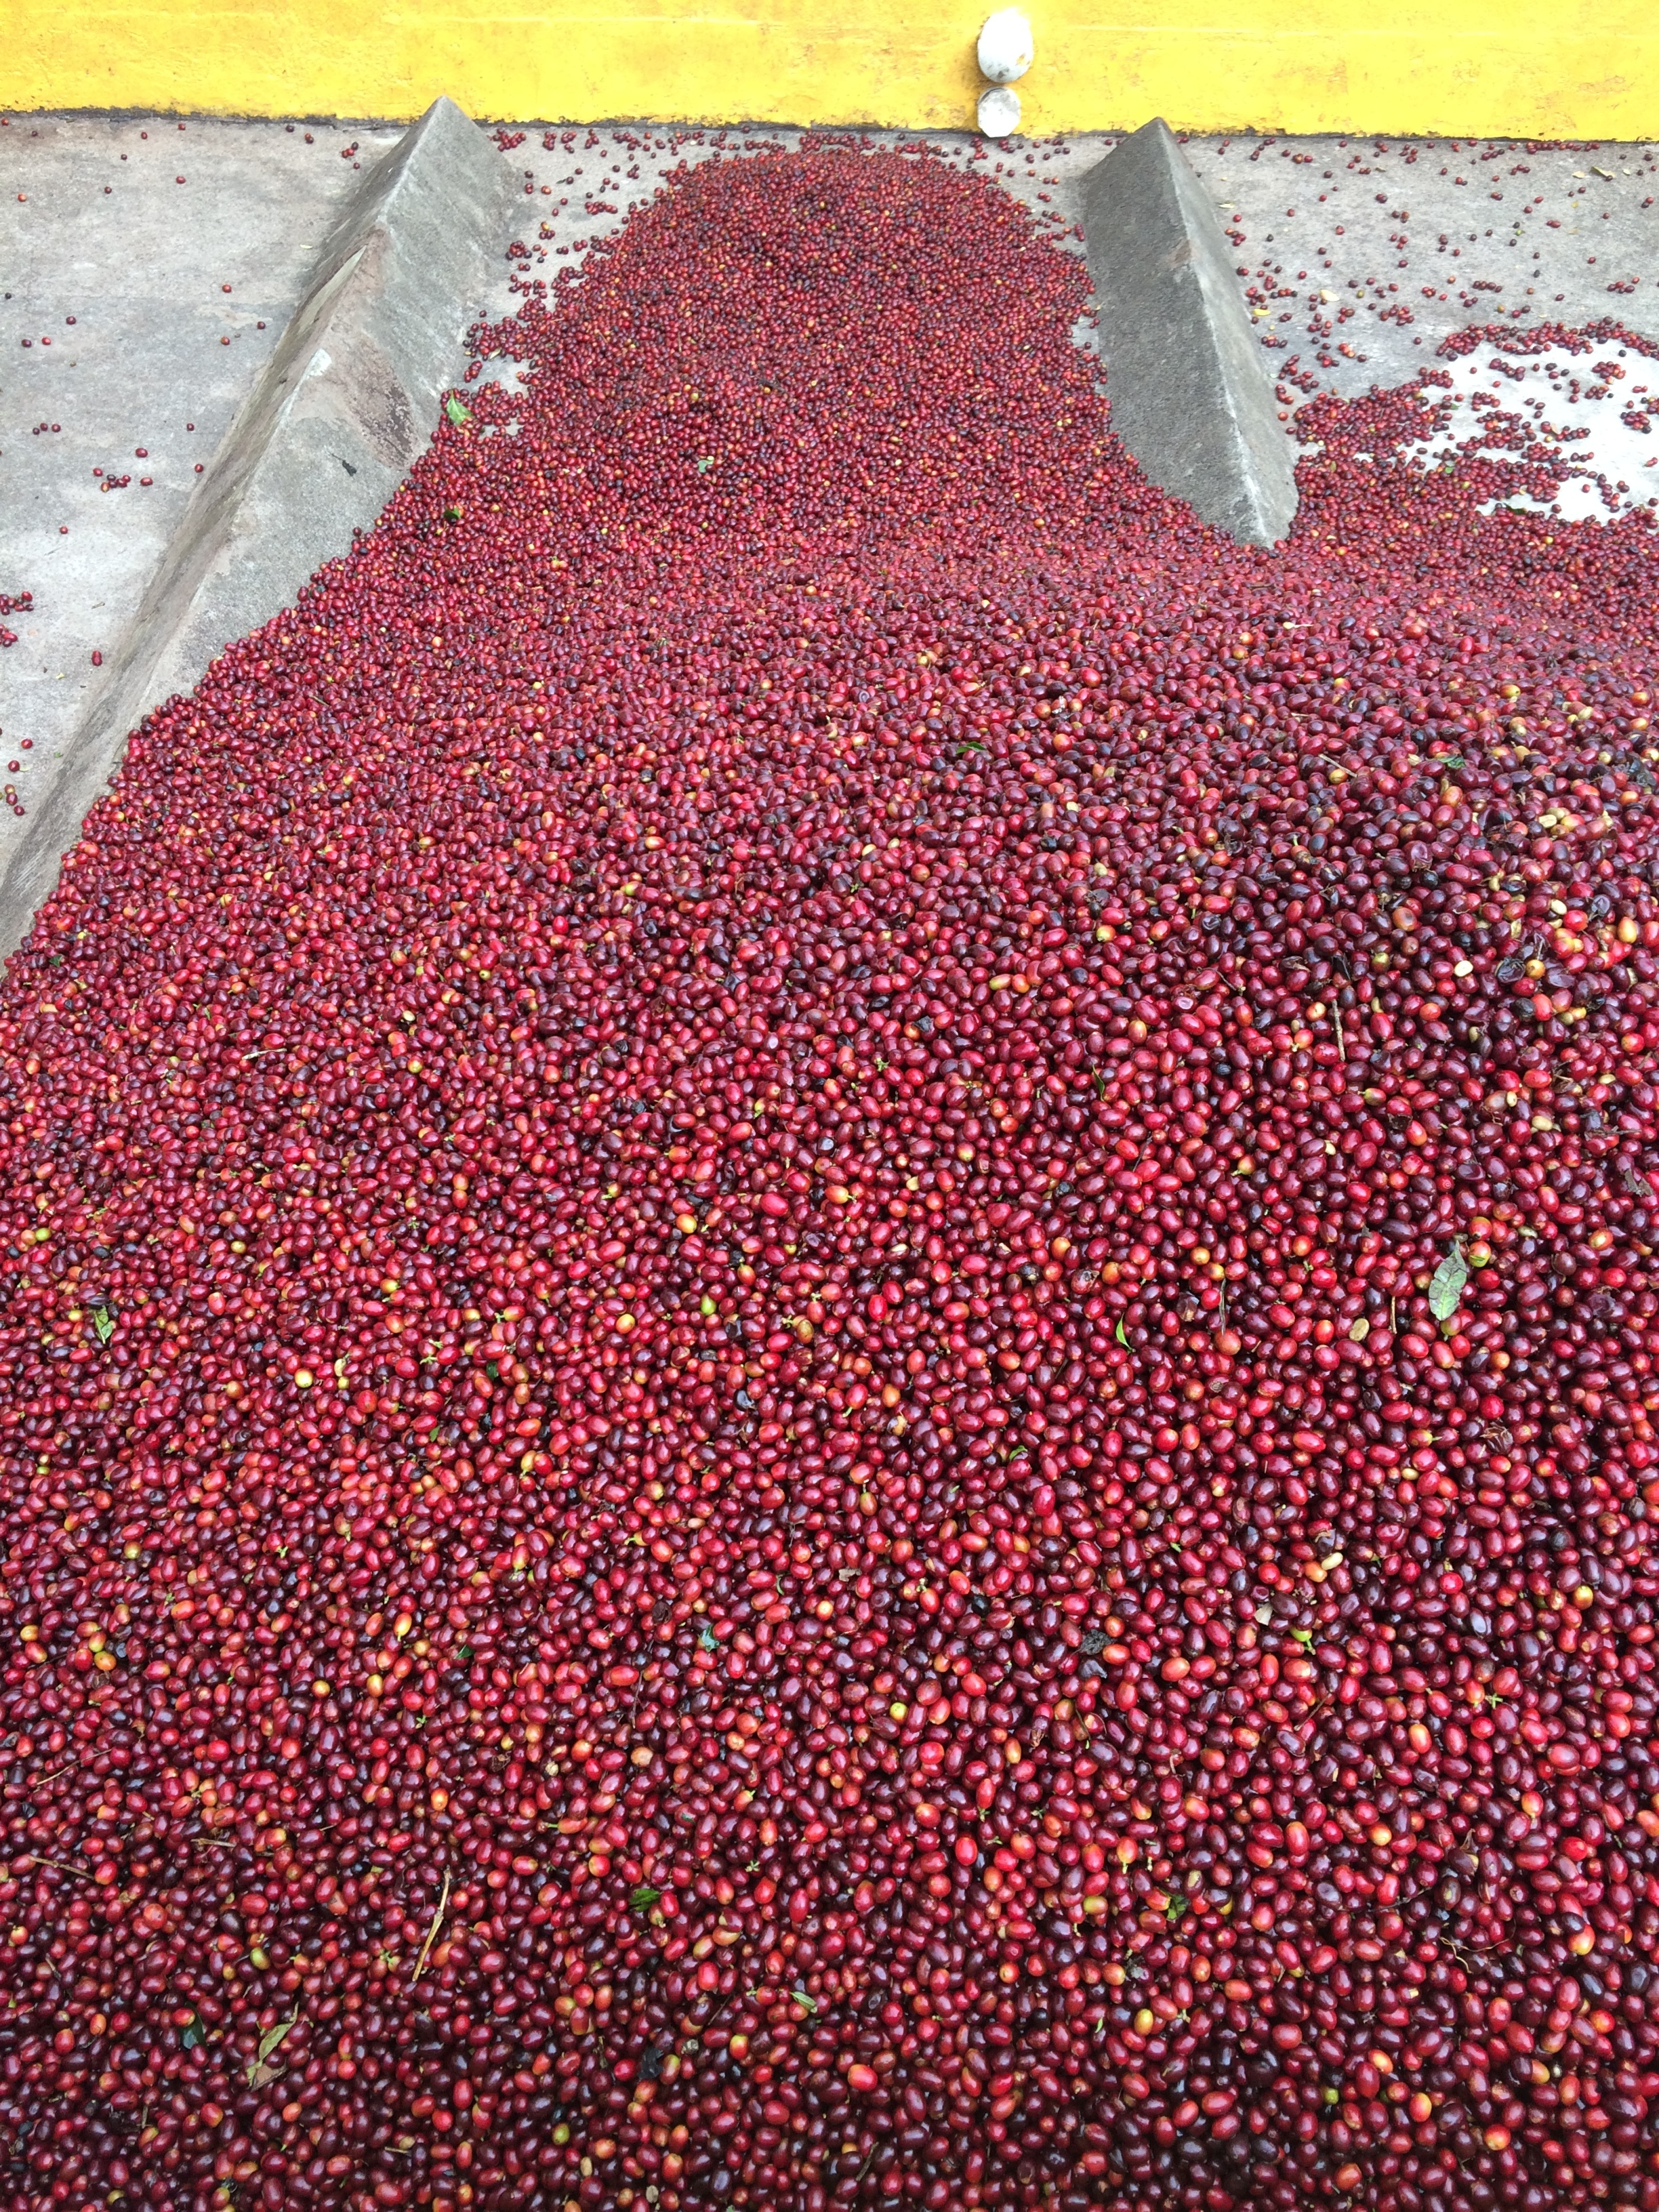 Coffee Cherries delivered to the mill.